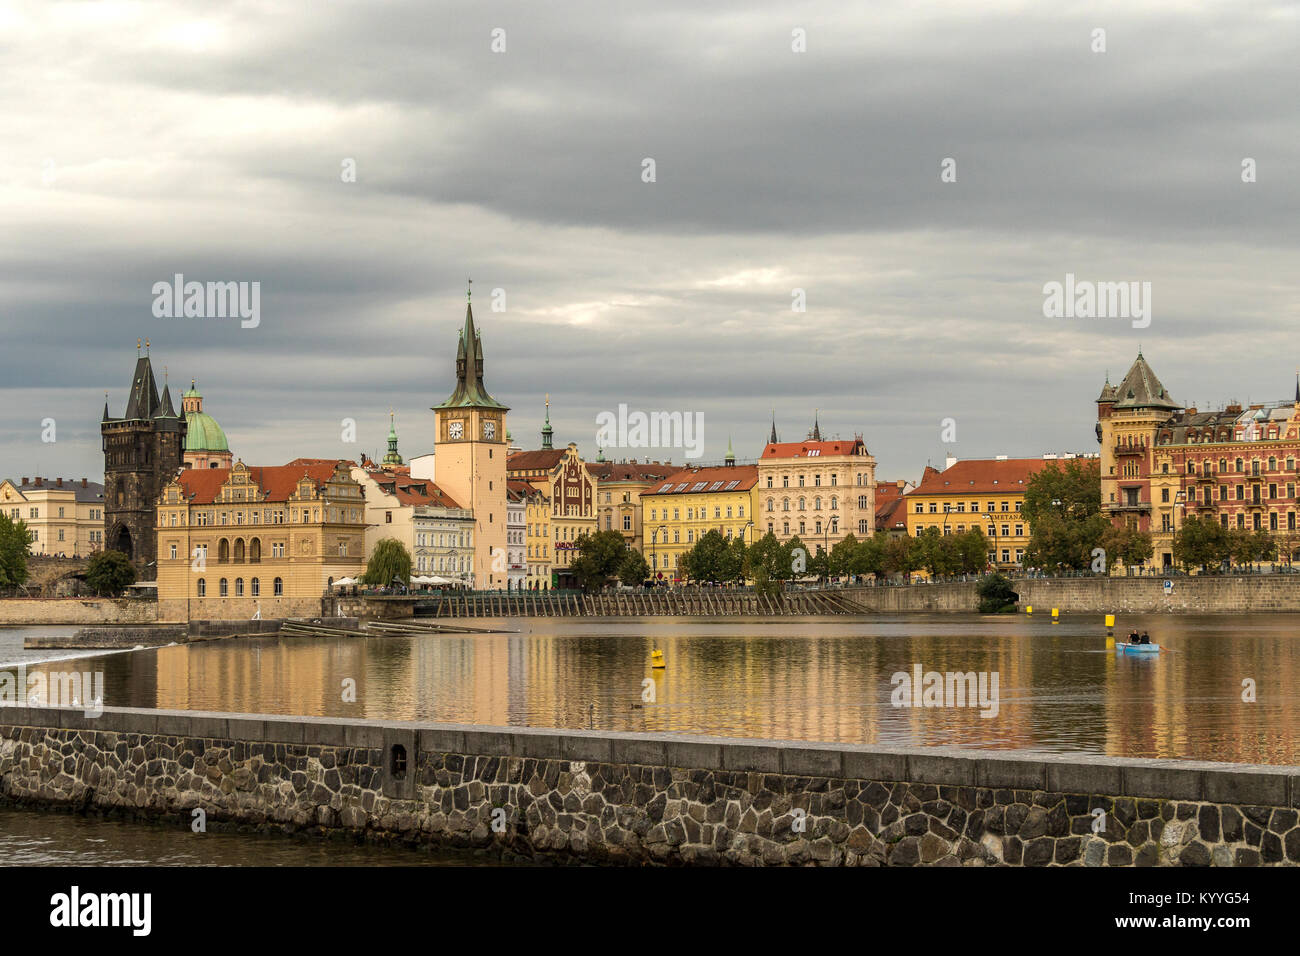 A couple rowing a boat rowing a boat on the River Vltava in Prague , Czech Republic - Stock Image